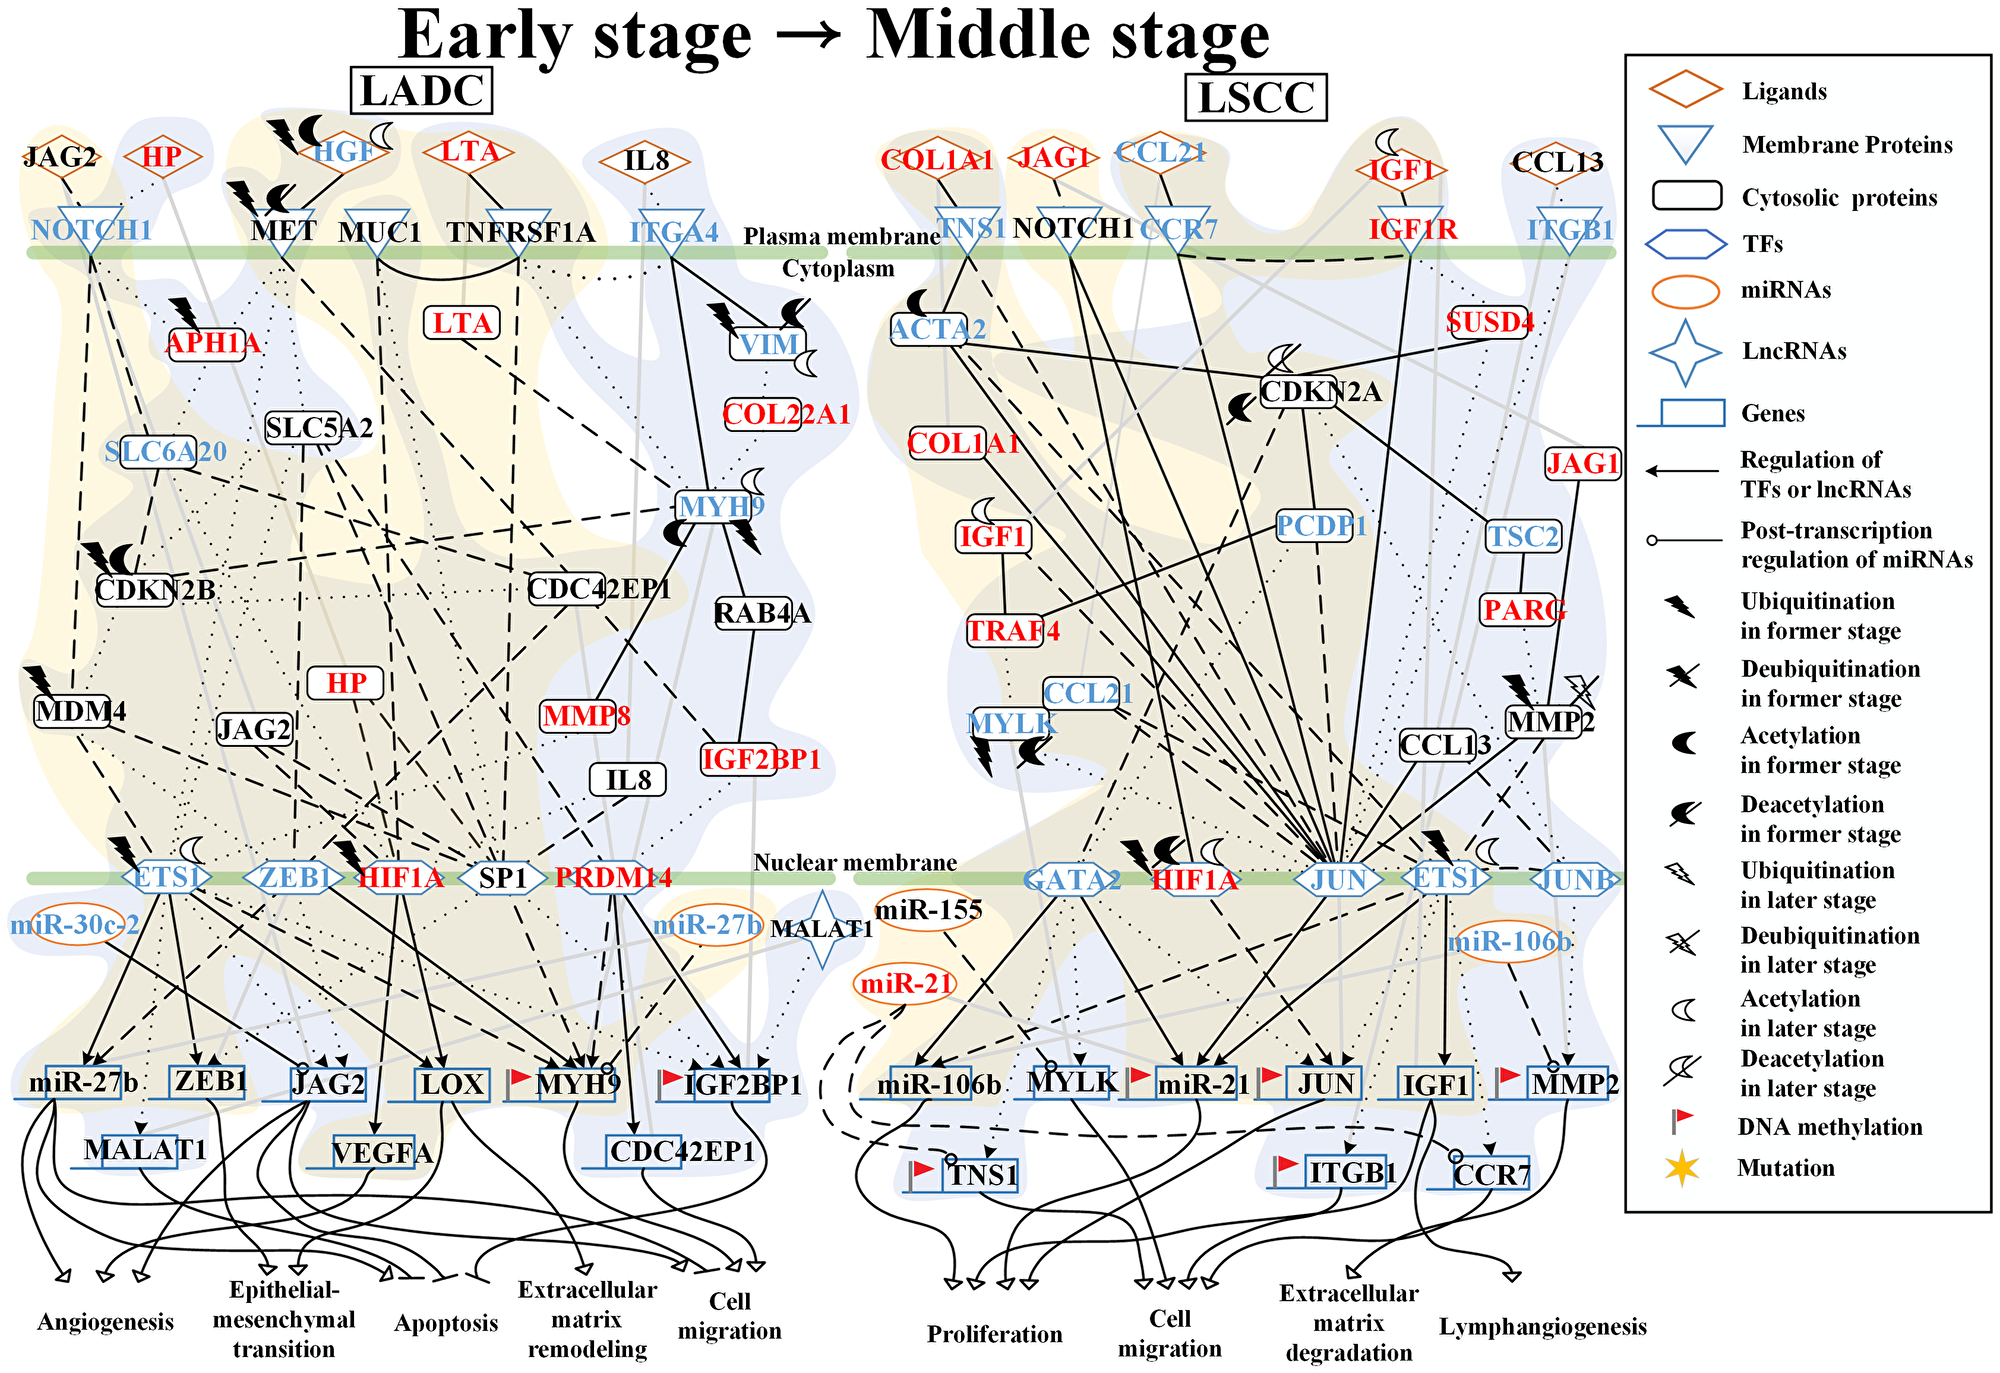 Core signaling pathways extracted from comparing genetic and epigenetic networks (GENs) between early stage and middle stage LADC and LSCC.